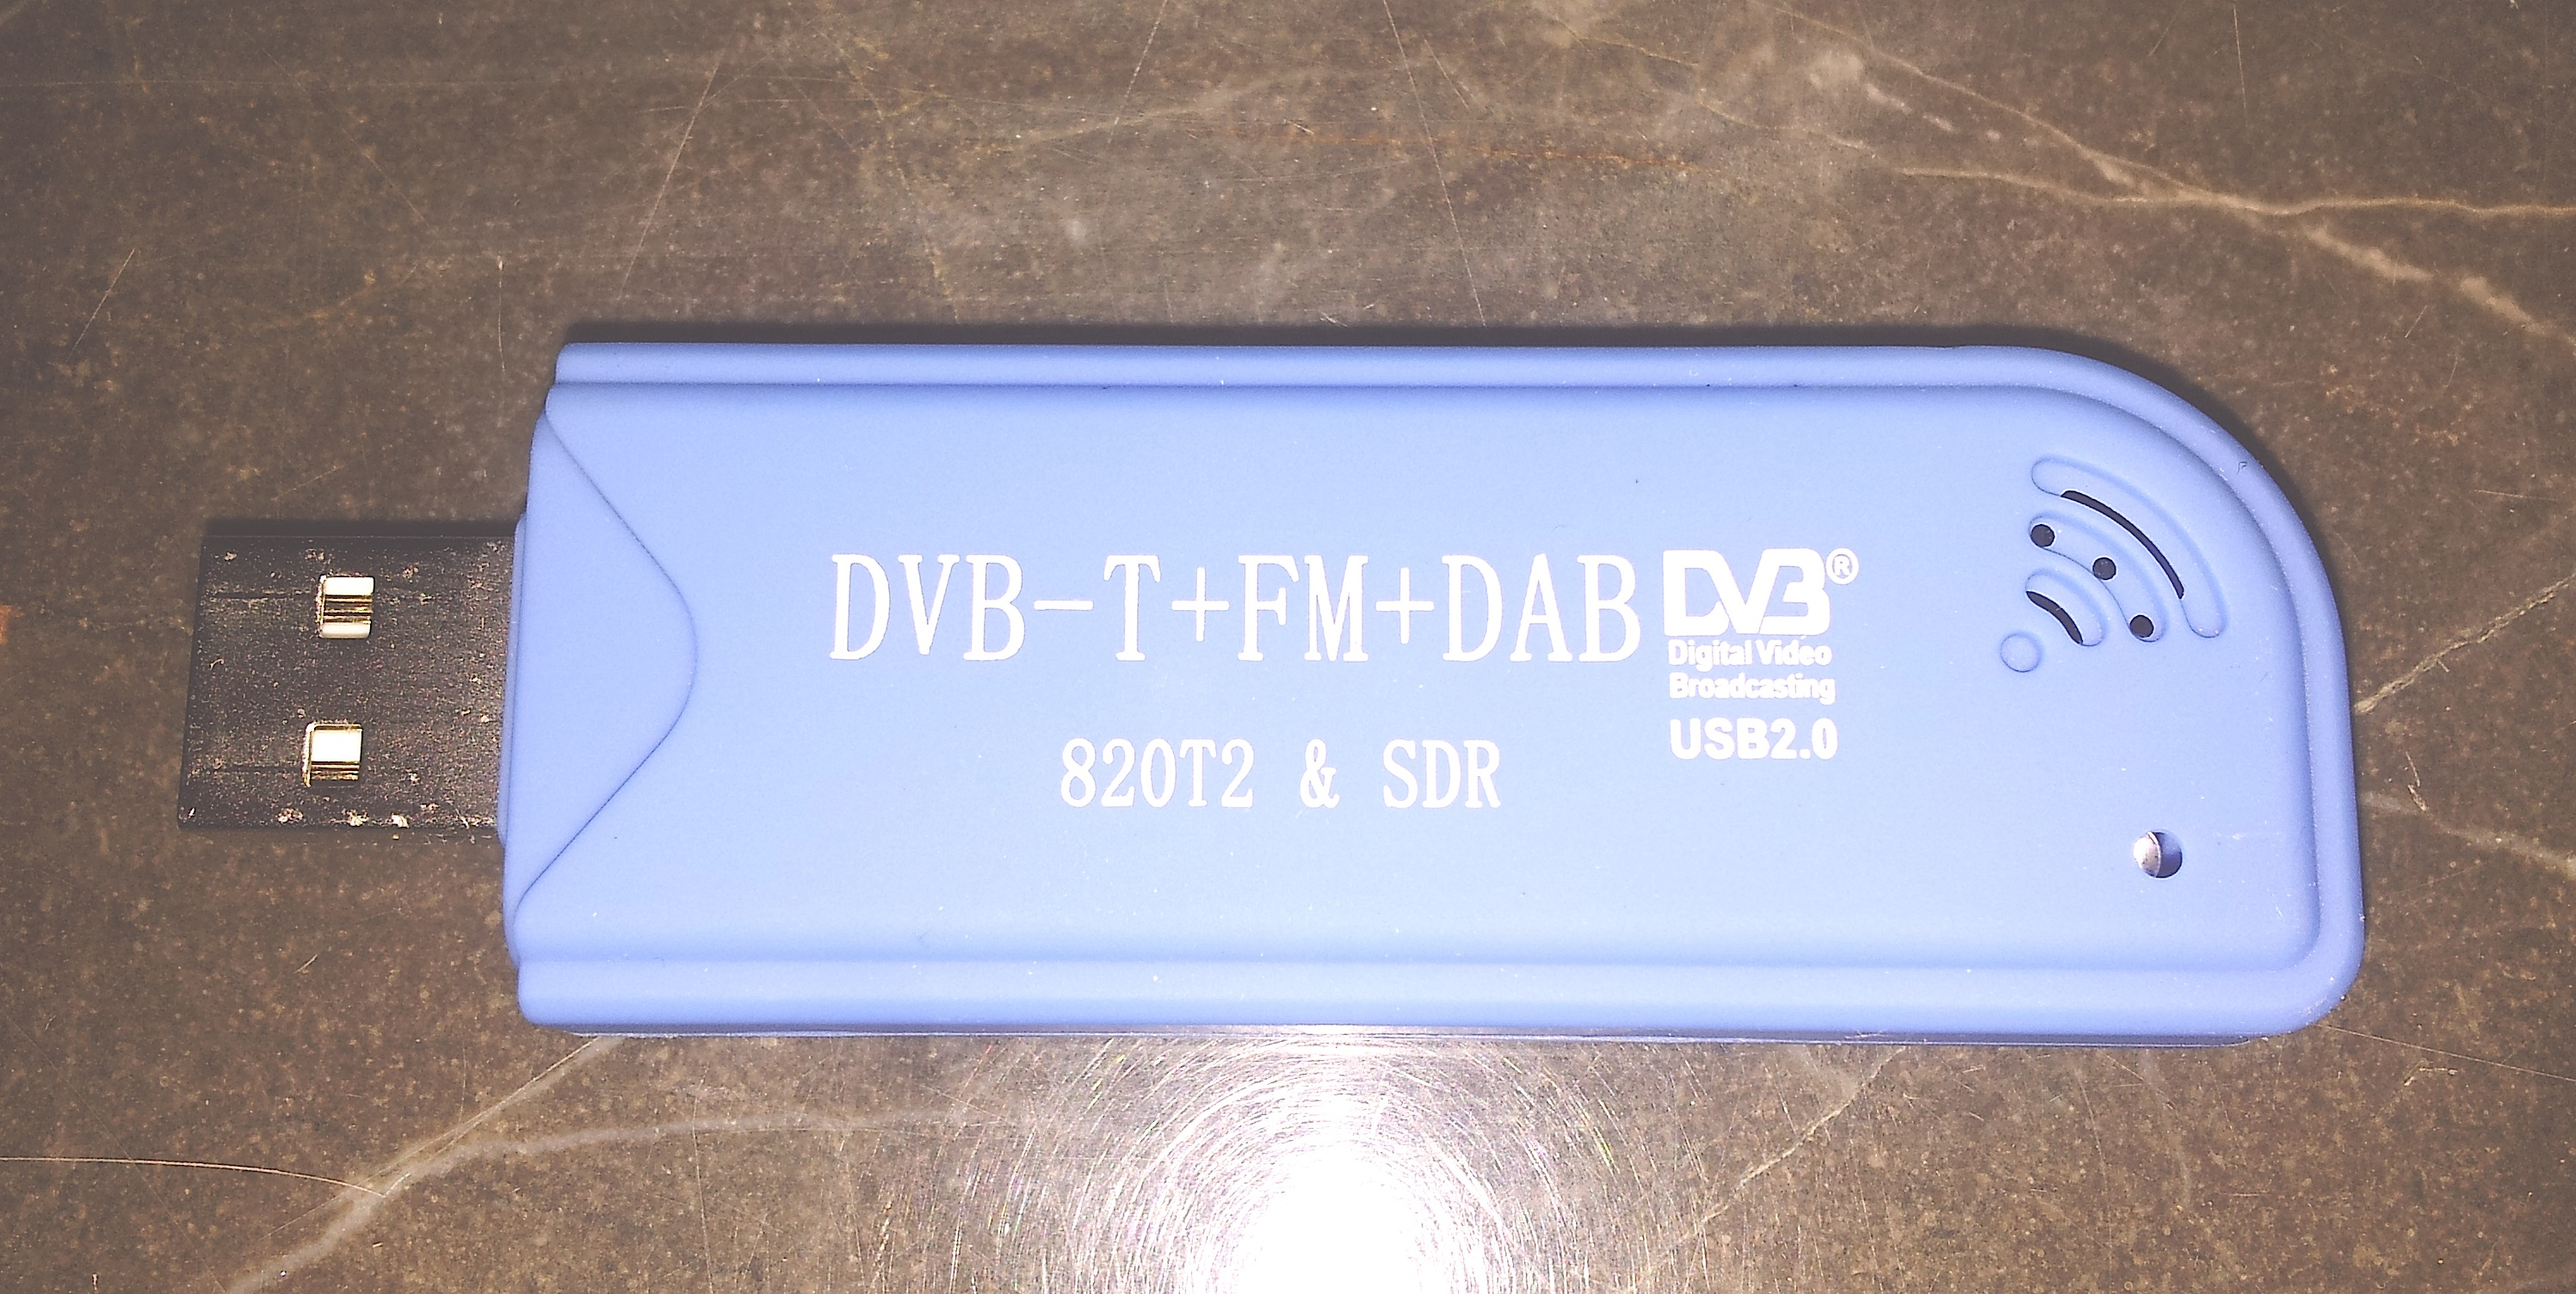 Decoding DMR / P25 with the RTL SDR – an update – The GB7MB